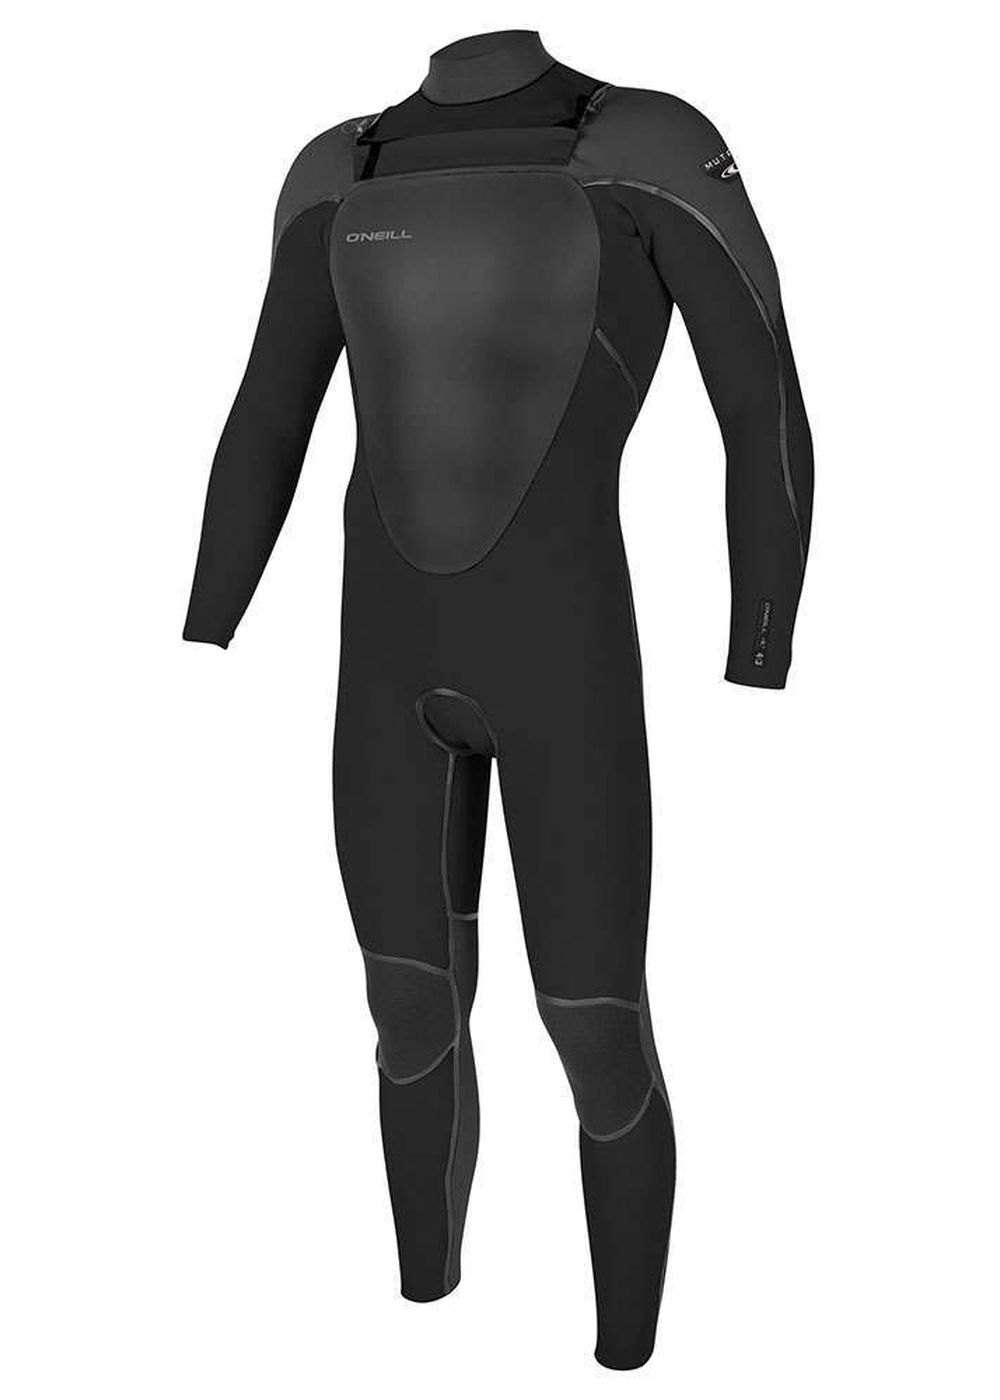 Oneill Mutant Fz 5/4 Wetsuit 2018 Black/graphpin Picture